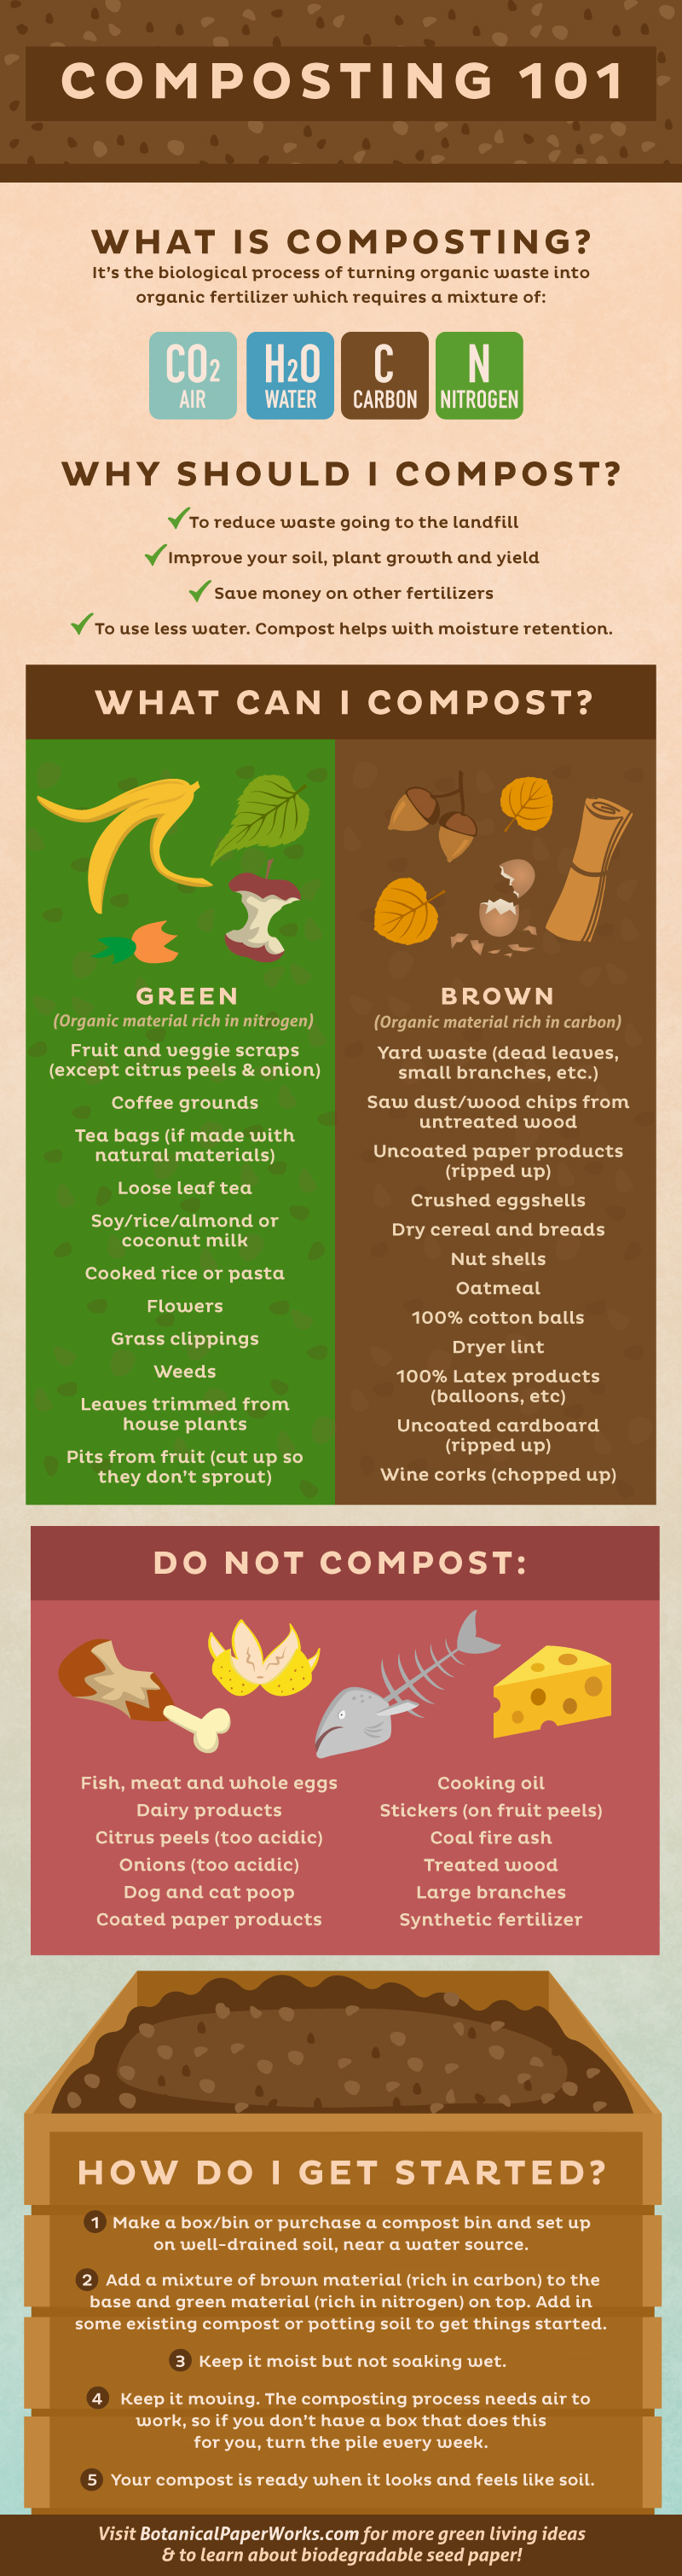 Learn more about composting so you can start reducing the amount of waste you send to the landfill!